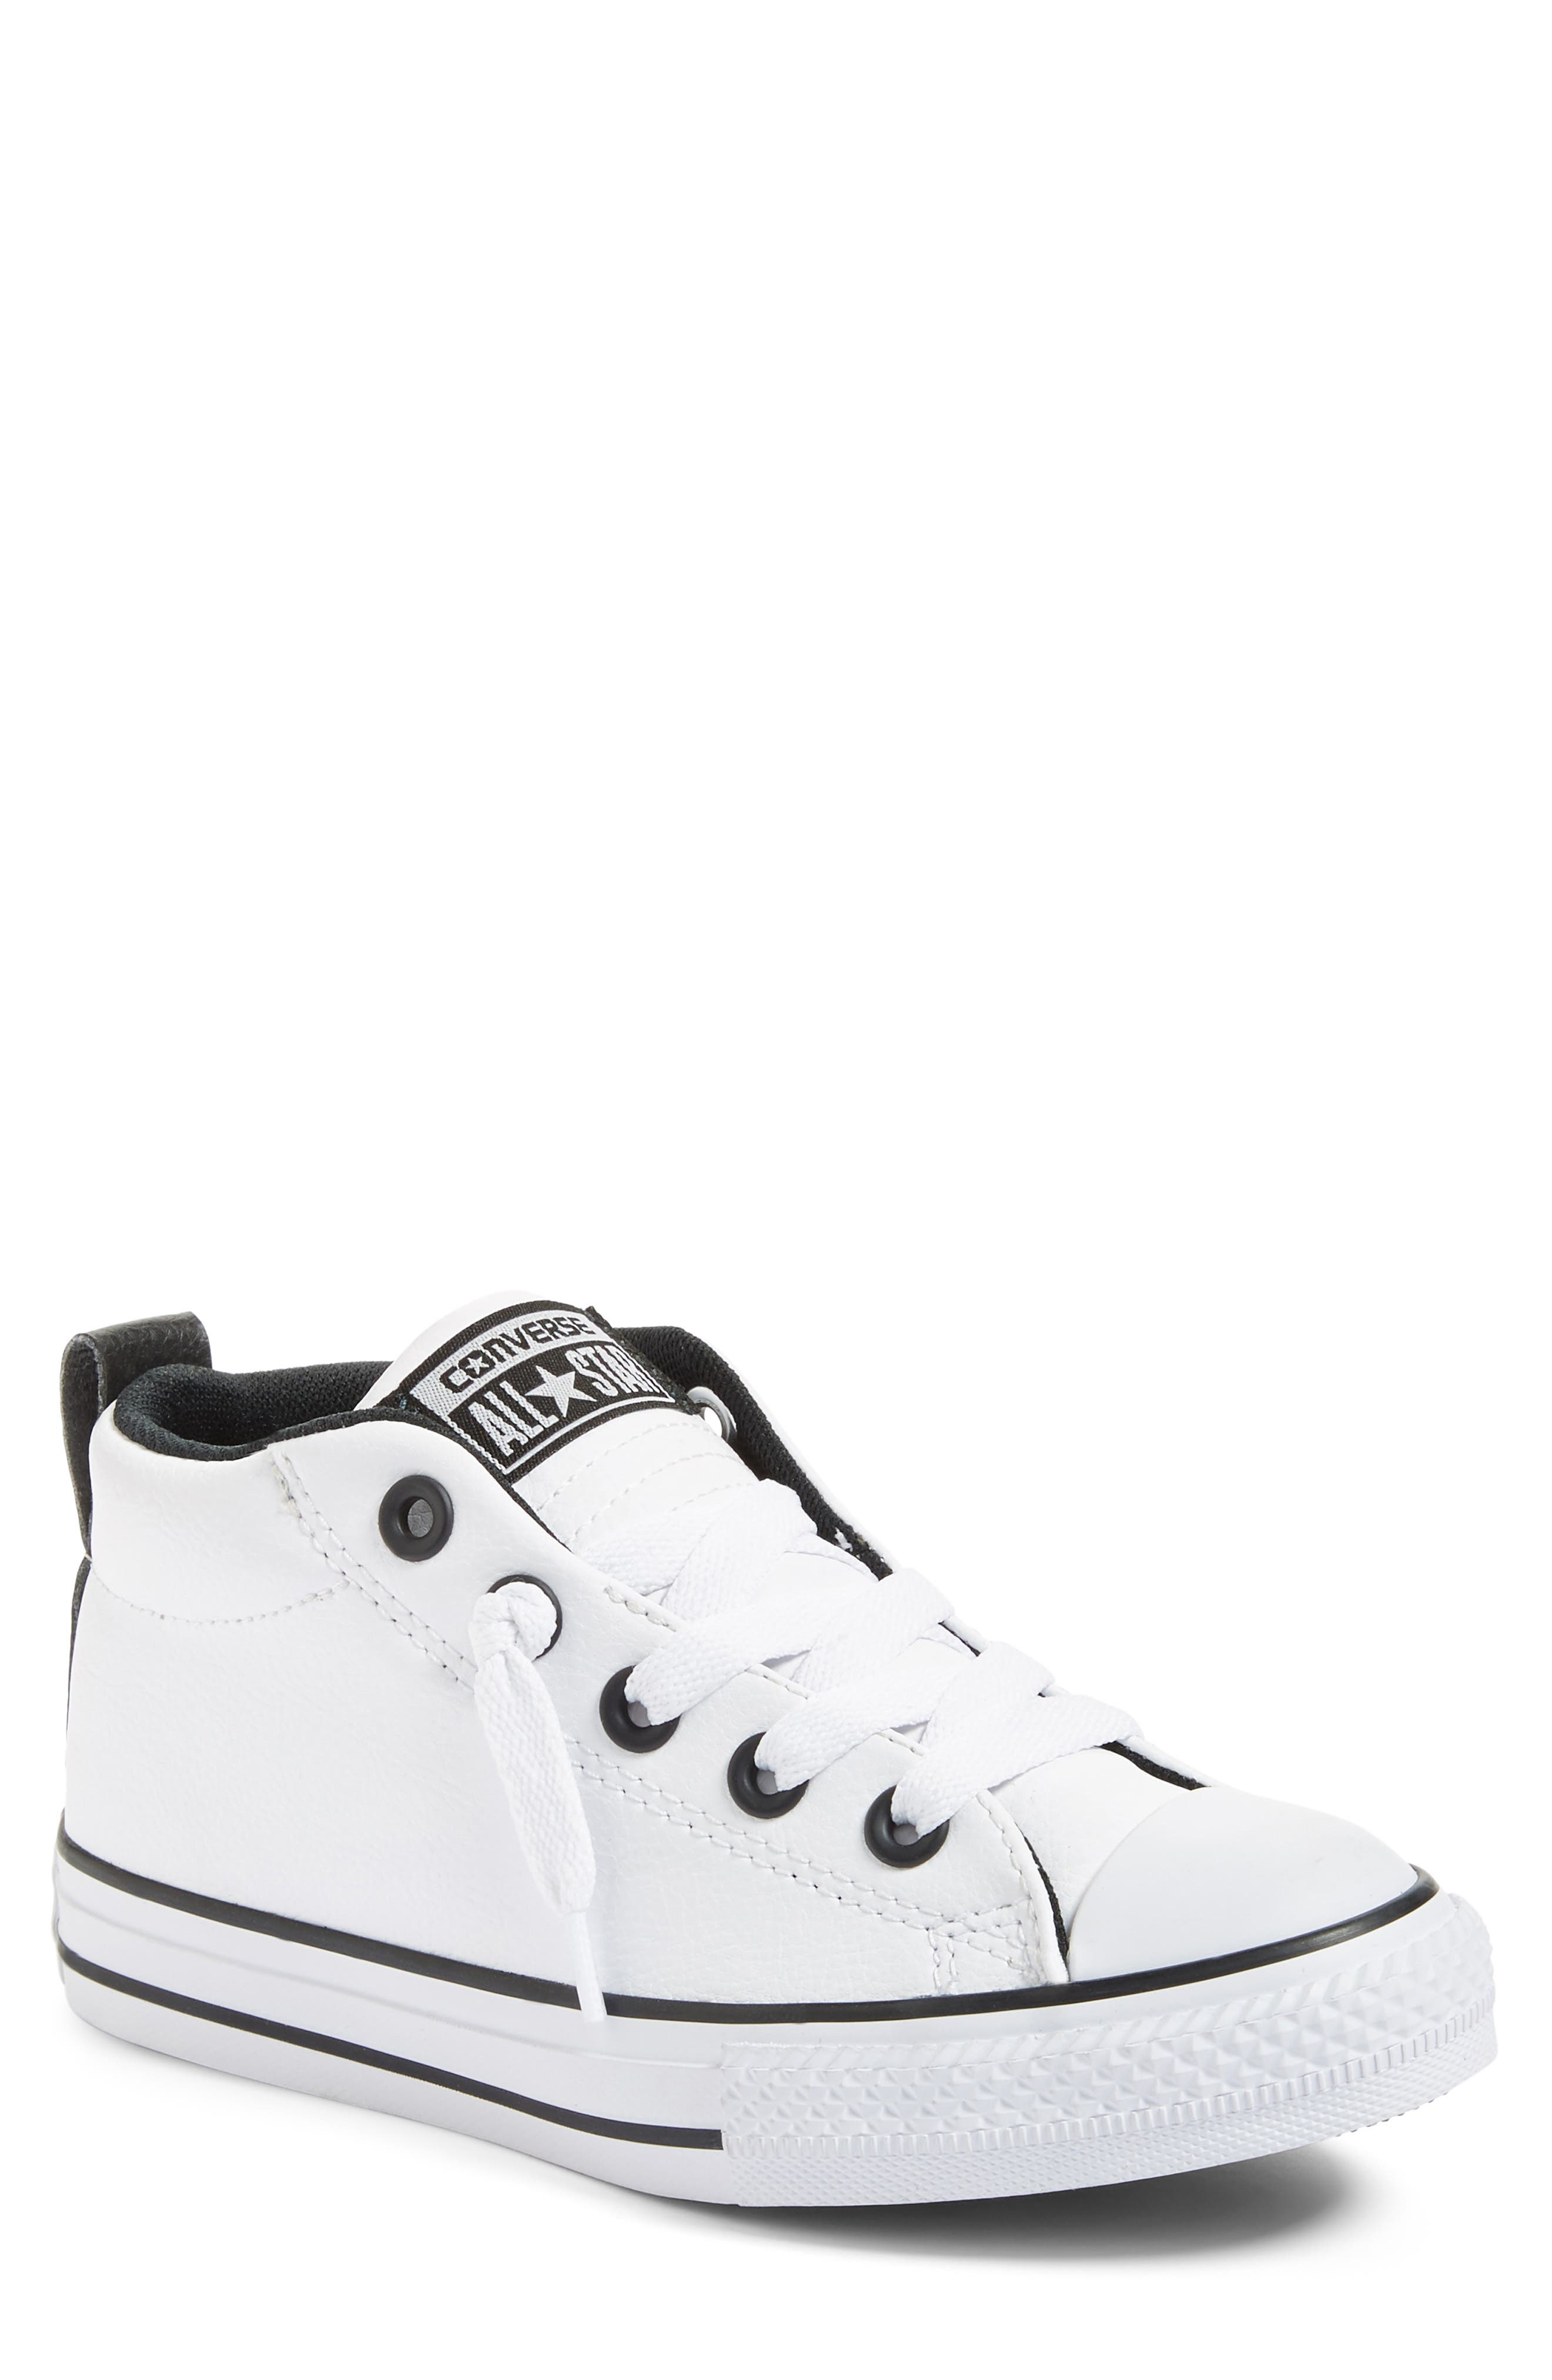 Alternate Image 1 Selected - Converse Chuck Taylor® All Star® Mid High Sneaker (Toddler, Little Kid & Big Kid)